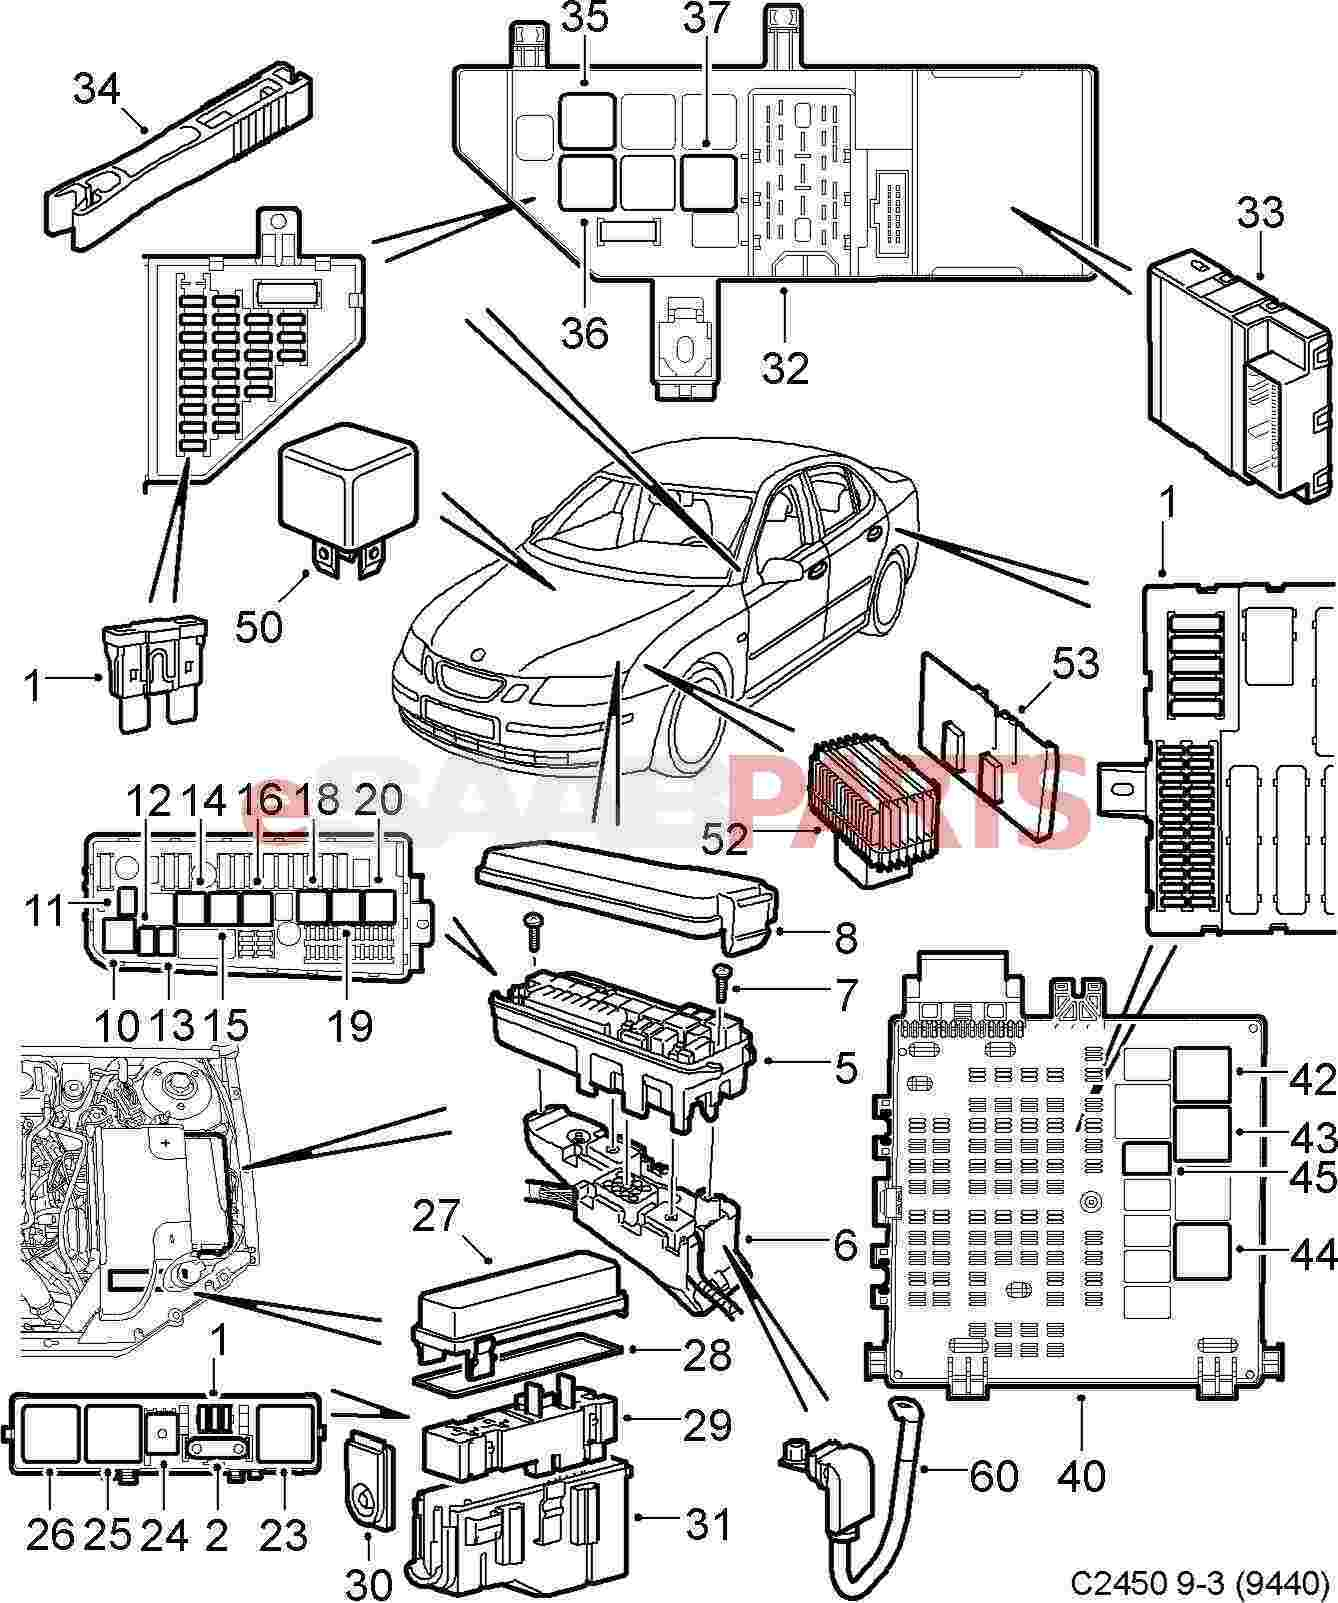 2004 saab 9 3 audio wiring diagram for whirlpool dryer 2005 convertible fuse all data lincoln navigator